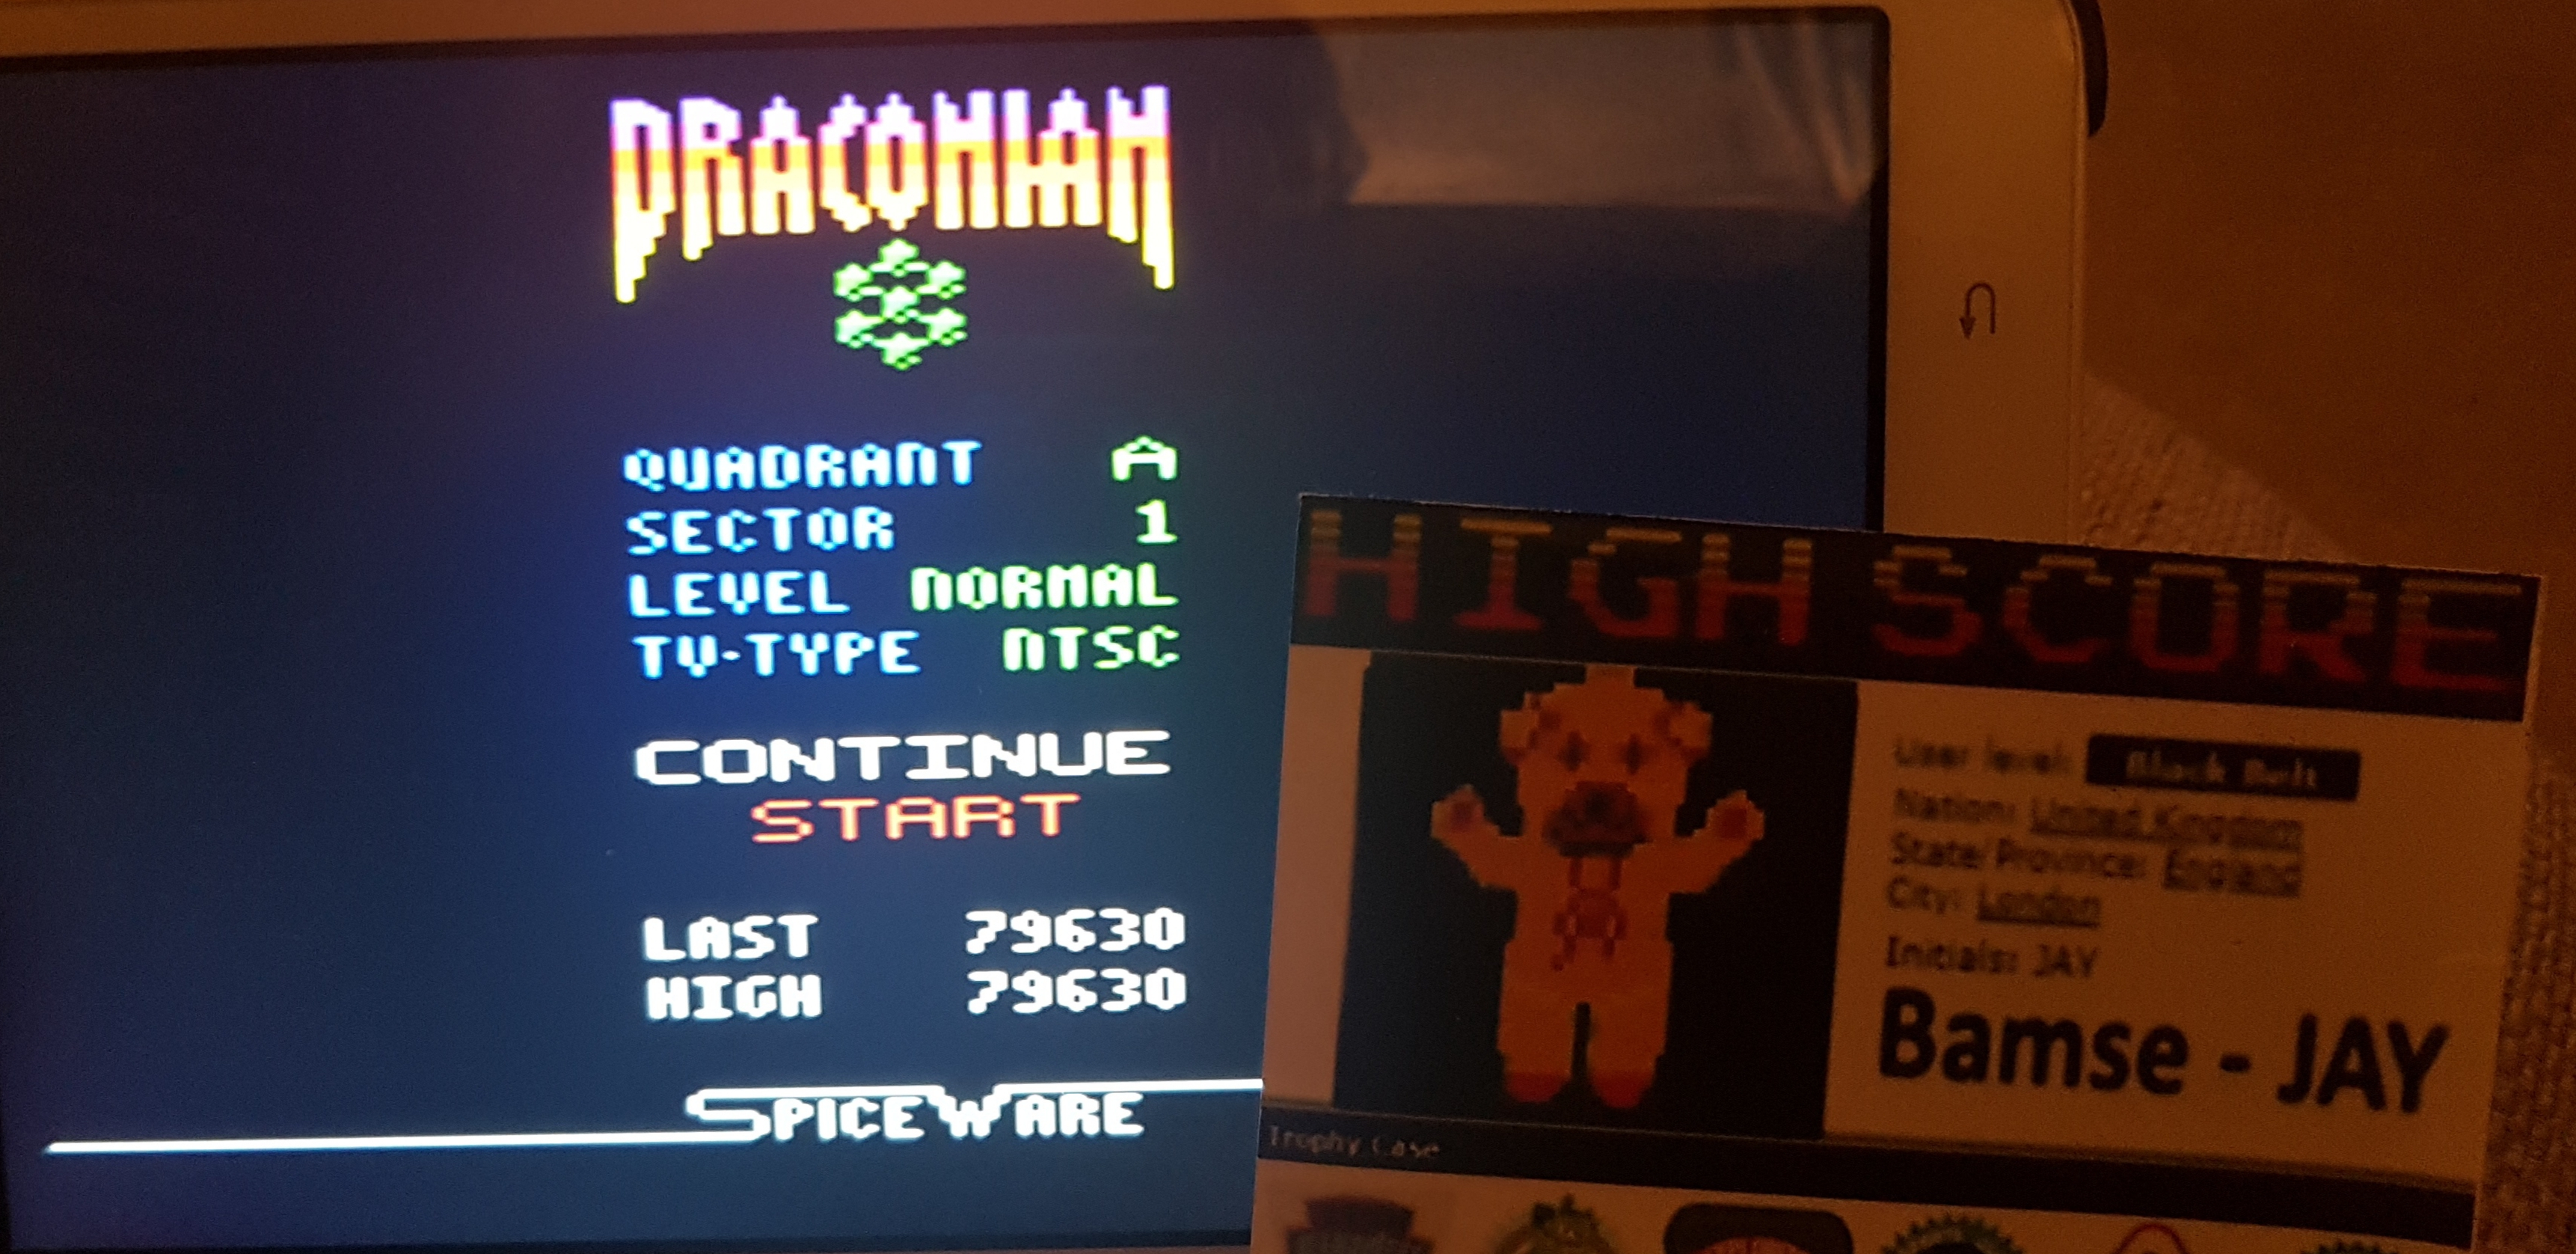 Bamse: Draconian: Quadrant Alpha / Sector 1 [Normal] (Atari 2600 Emulated) 79,630 points on 2019-10-12 13:20:24